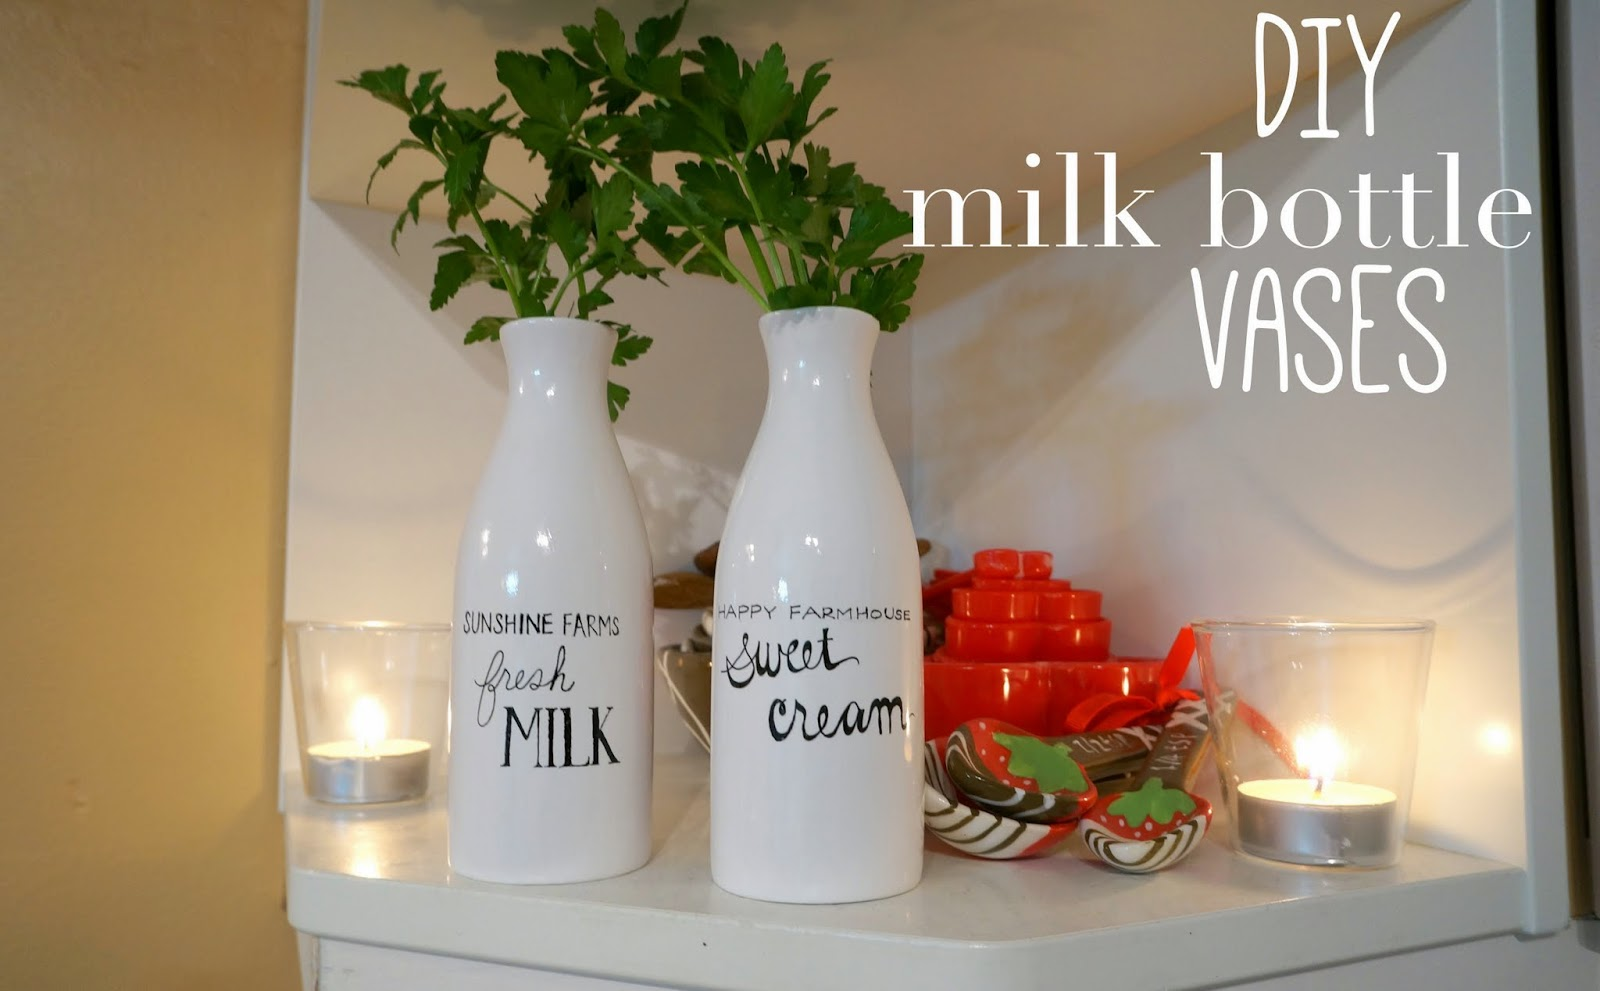 Racheerachh travels diy milk bottle vases reviewsmspy